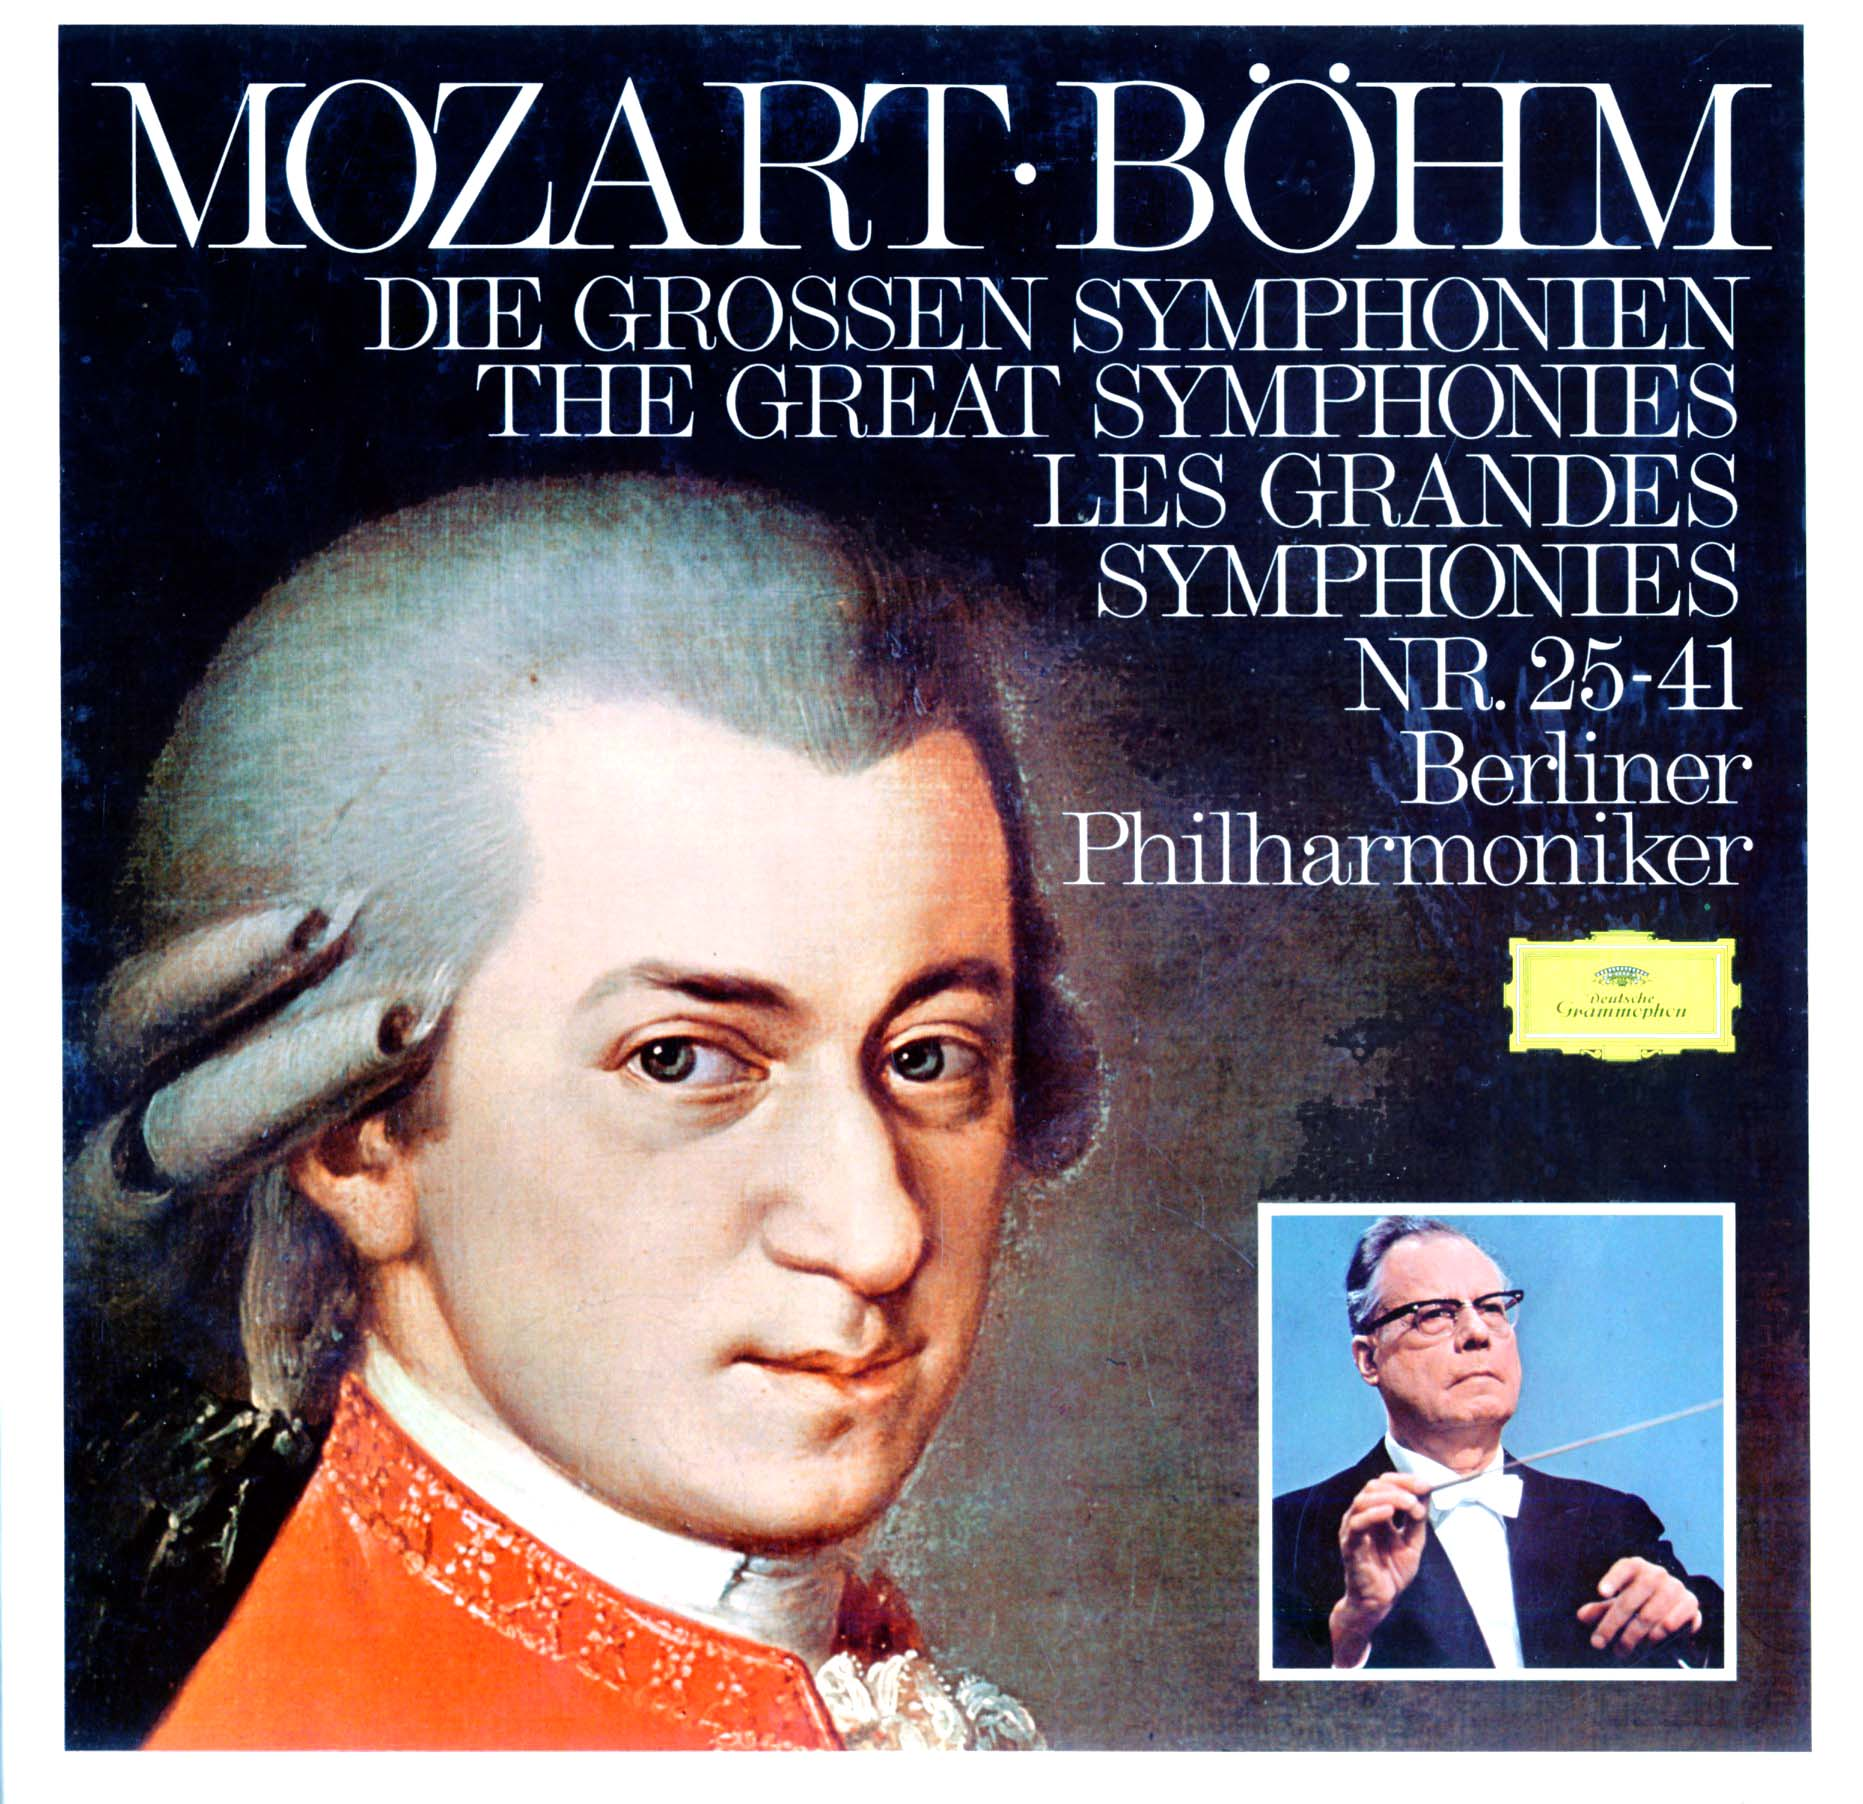 2563334 - Berliner Philharmoniker - Mozart Bohm Die Grossen Symphonien on CD